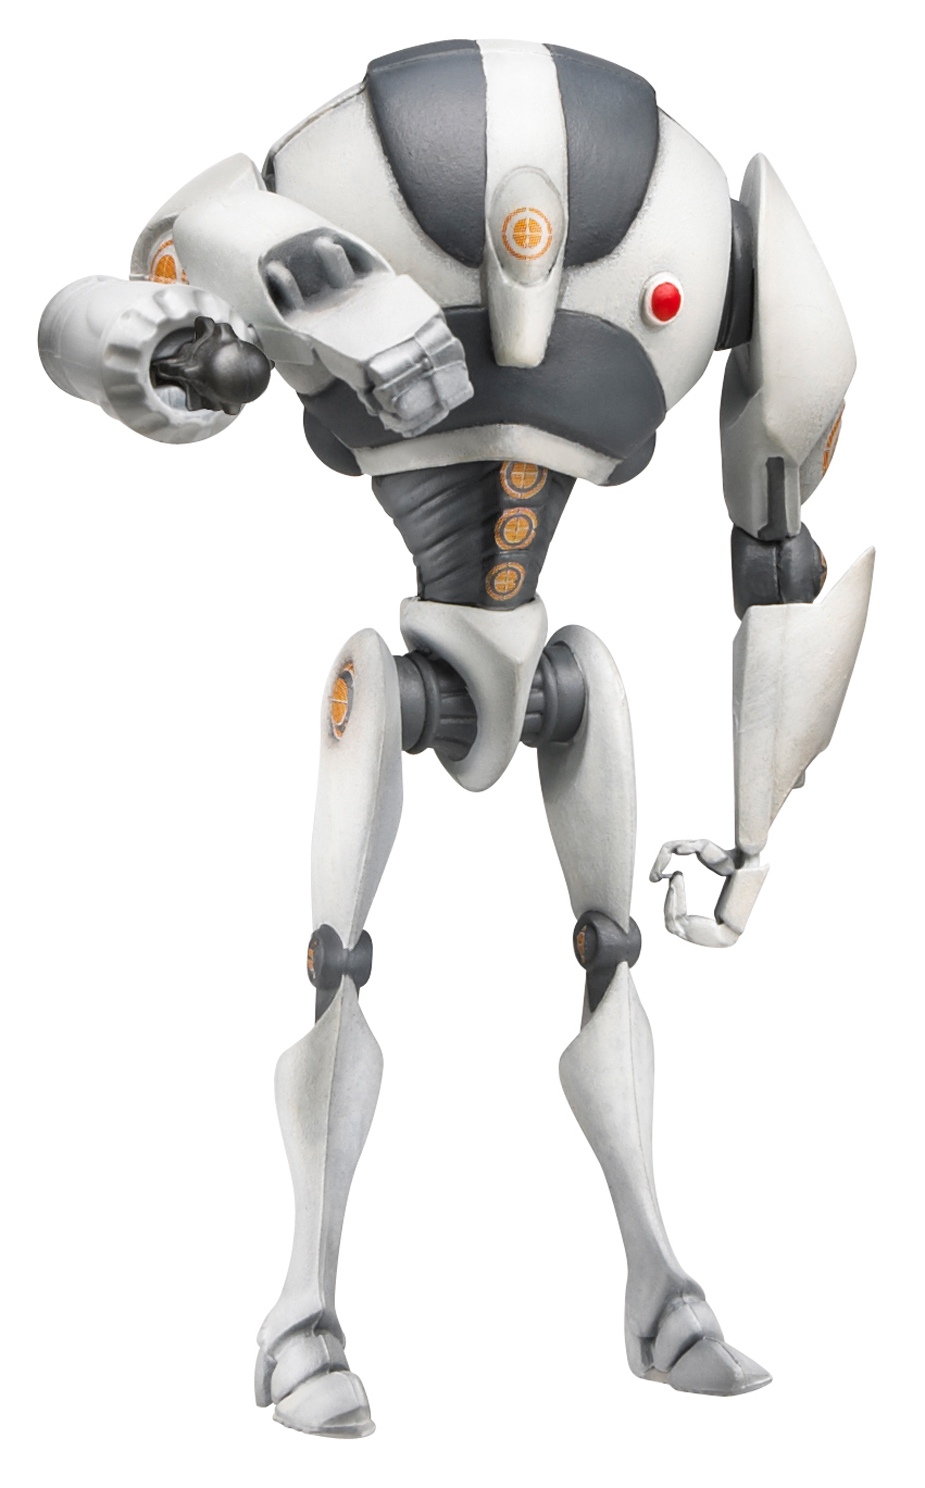 Star Wars The Clone Wars Super Battle Droids Star-wars-clone-wars-super